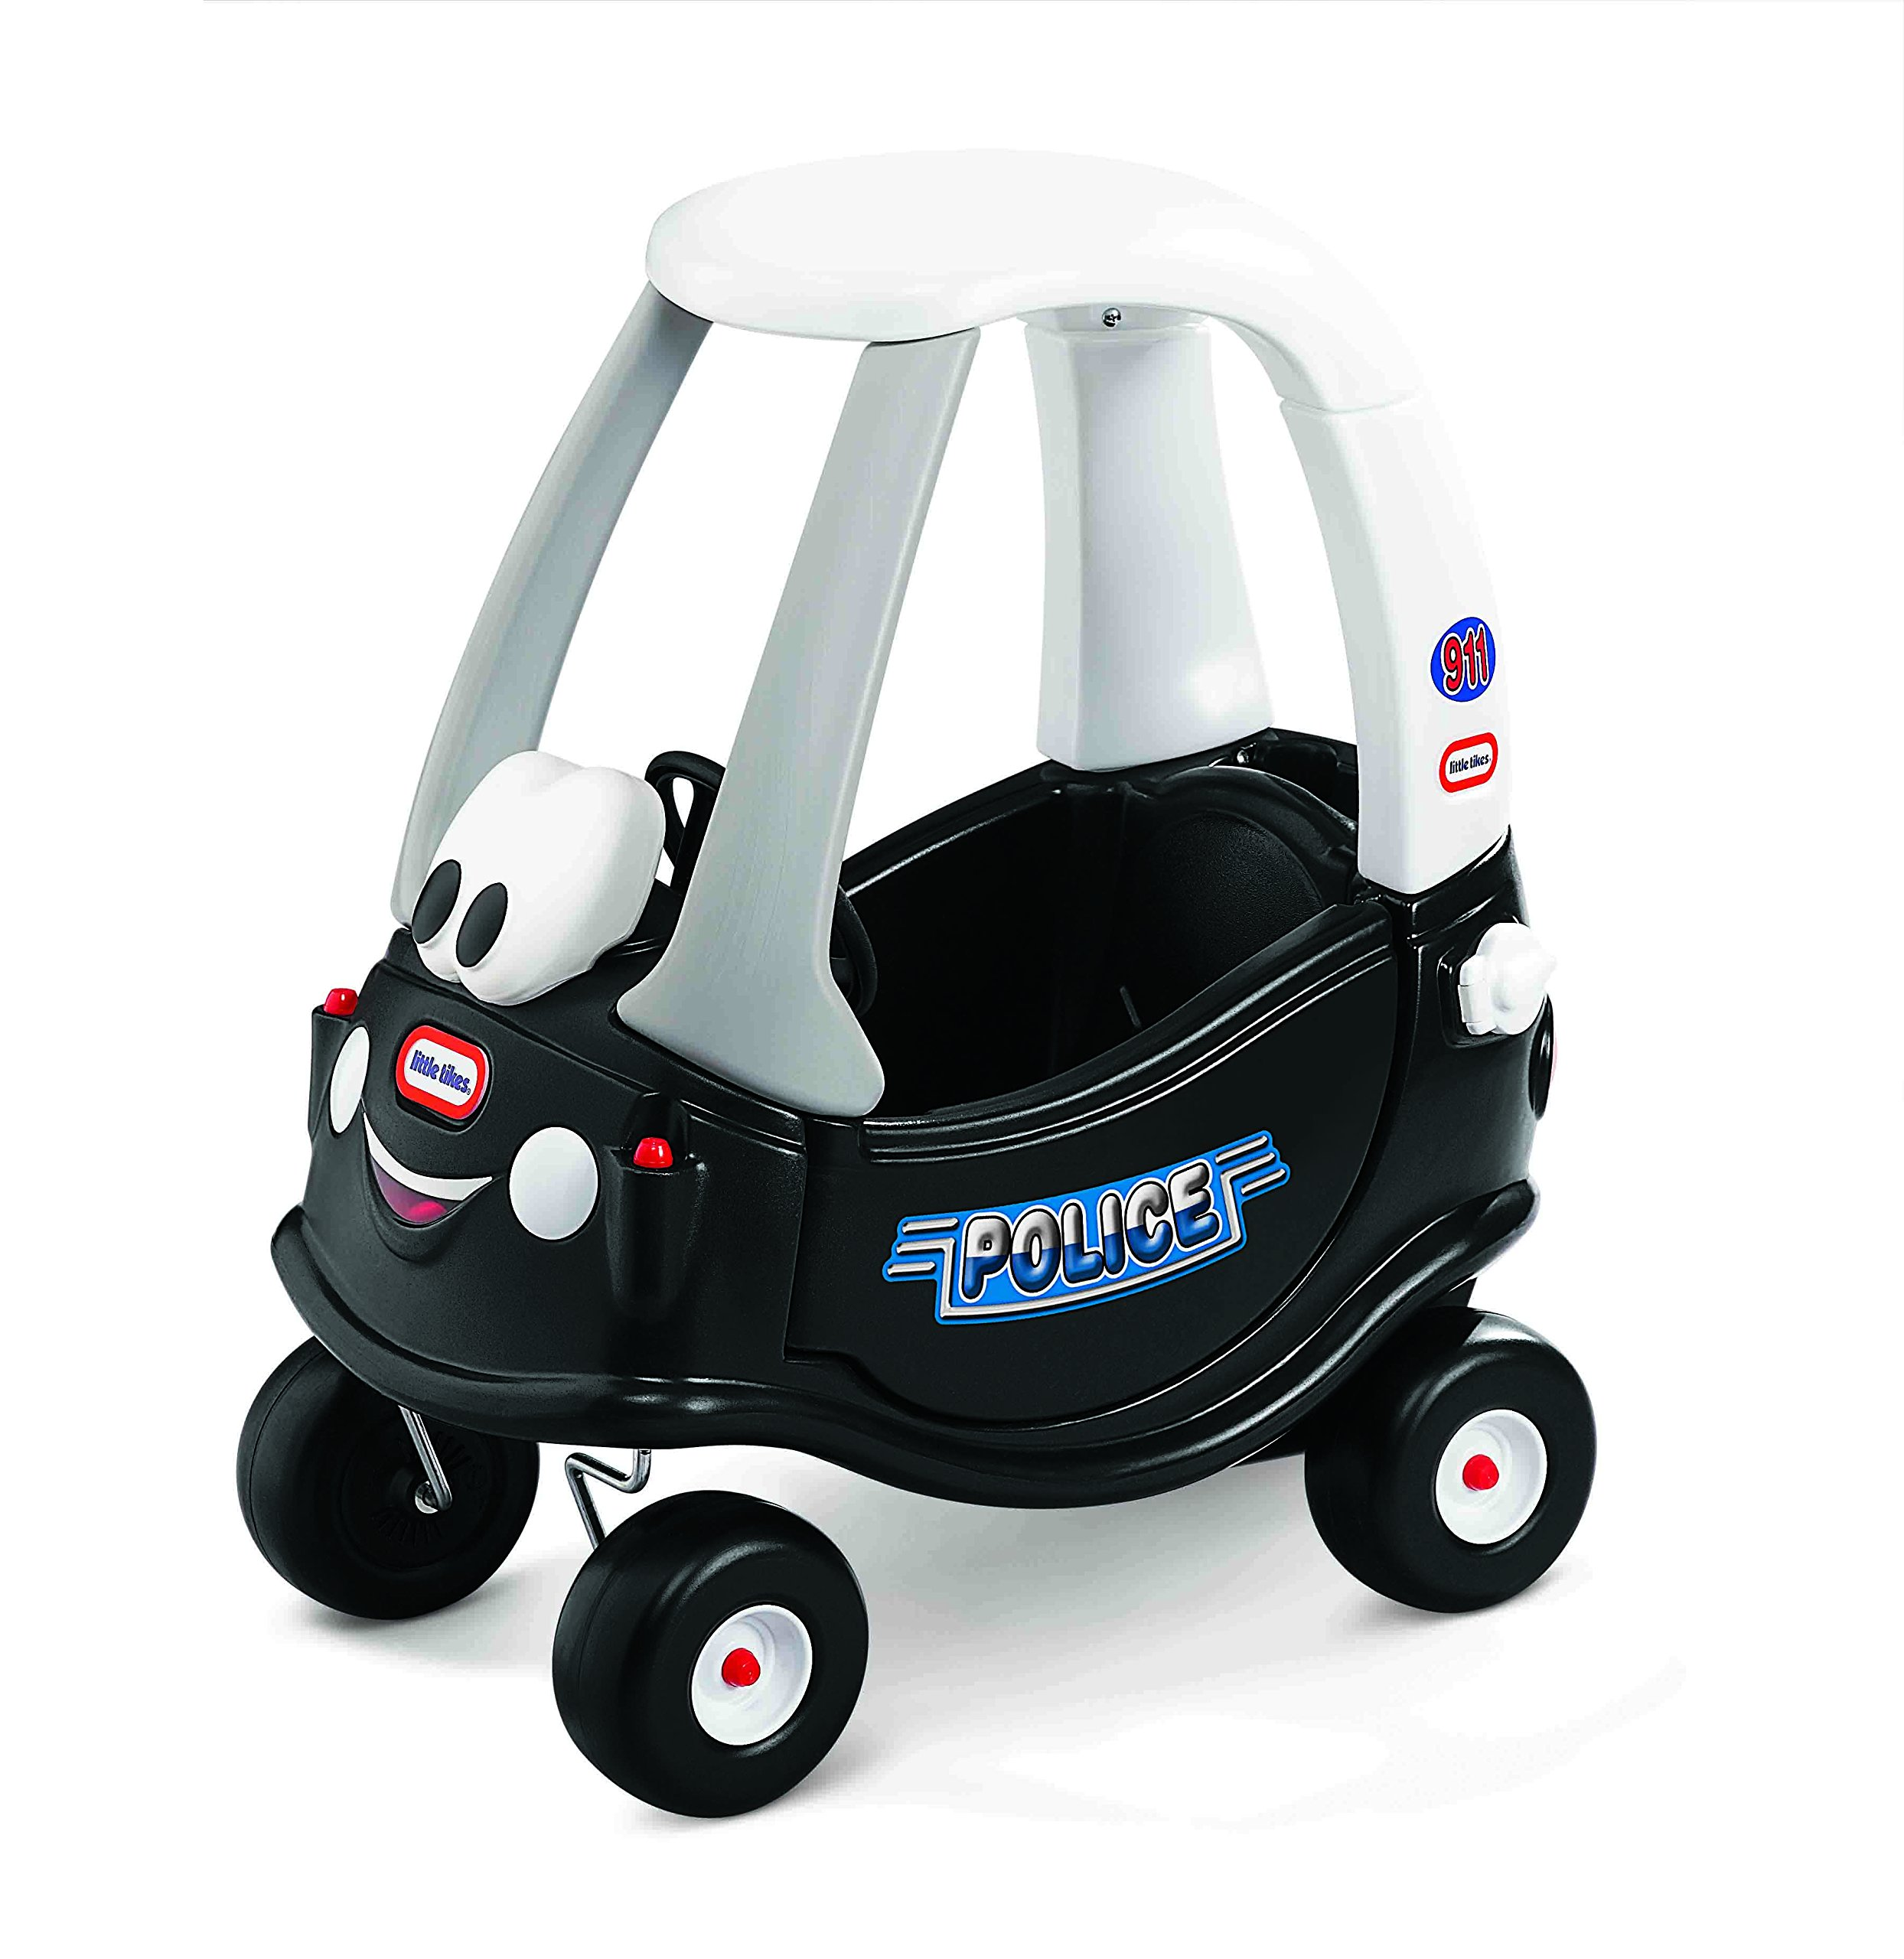 Little Tikes Cozy Coupe Tikes Patrol, Ride-On by Little Tikes